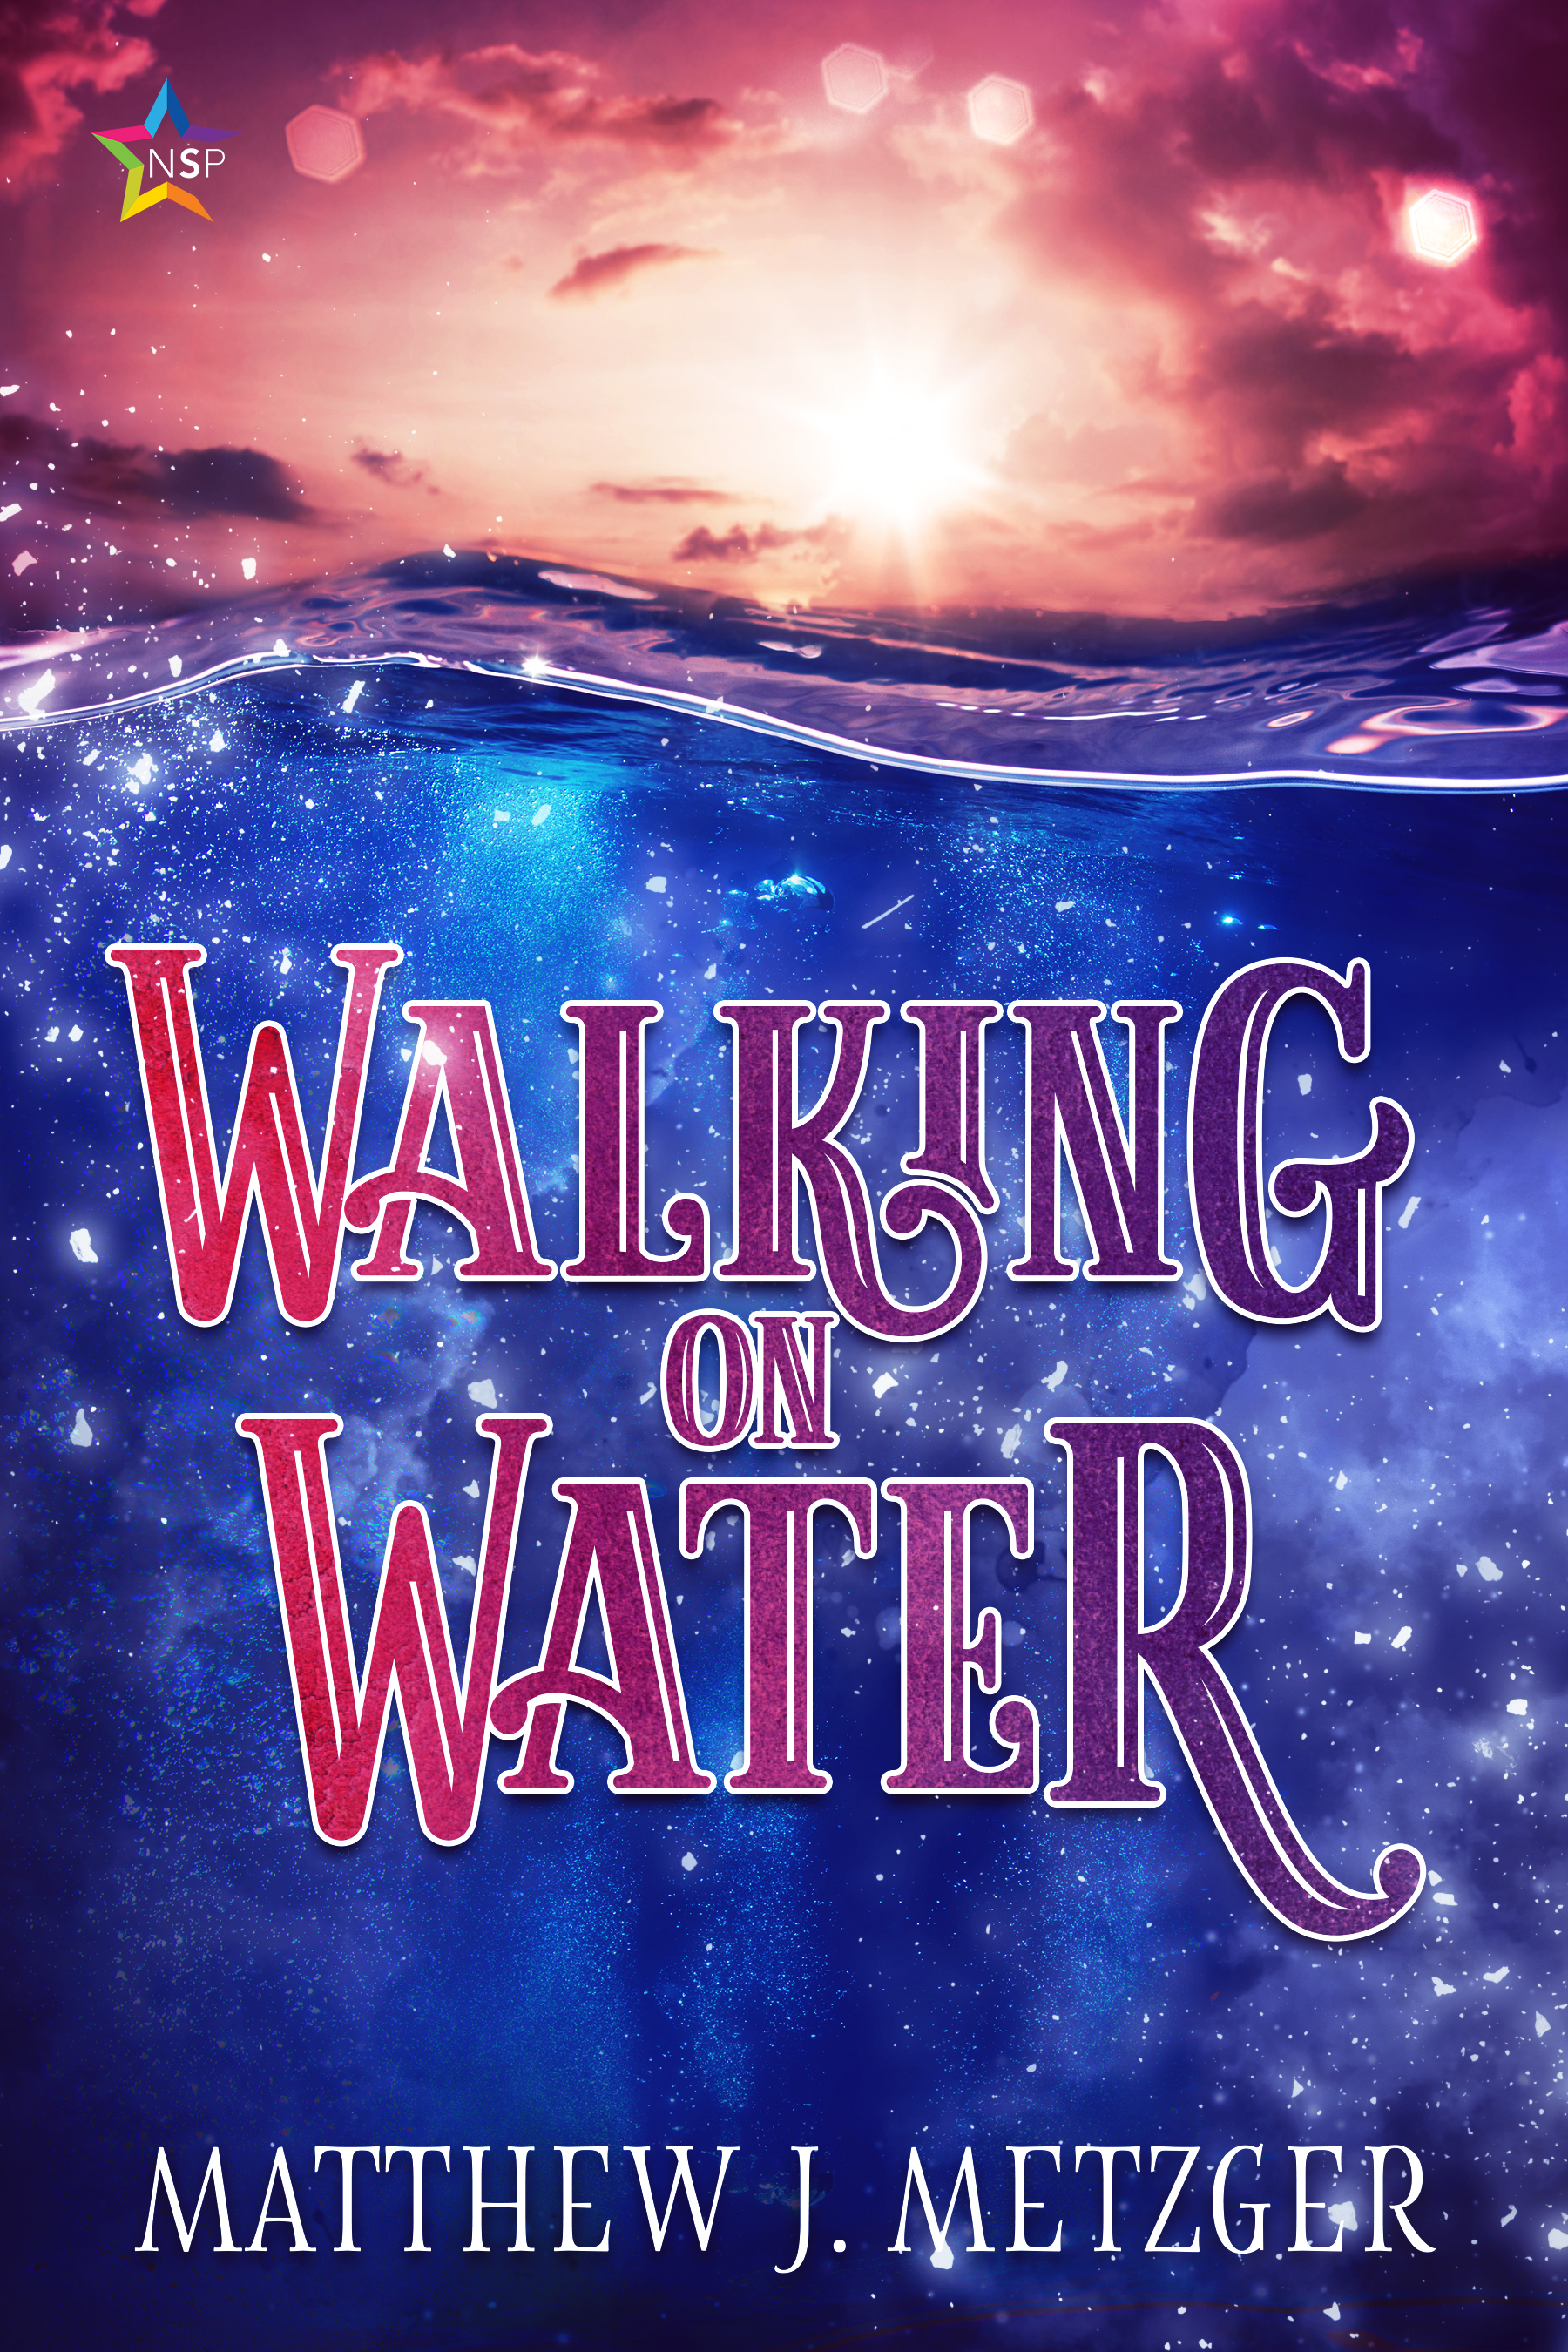 Guest Post: Walking on Water by Matthew J. Metzger